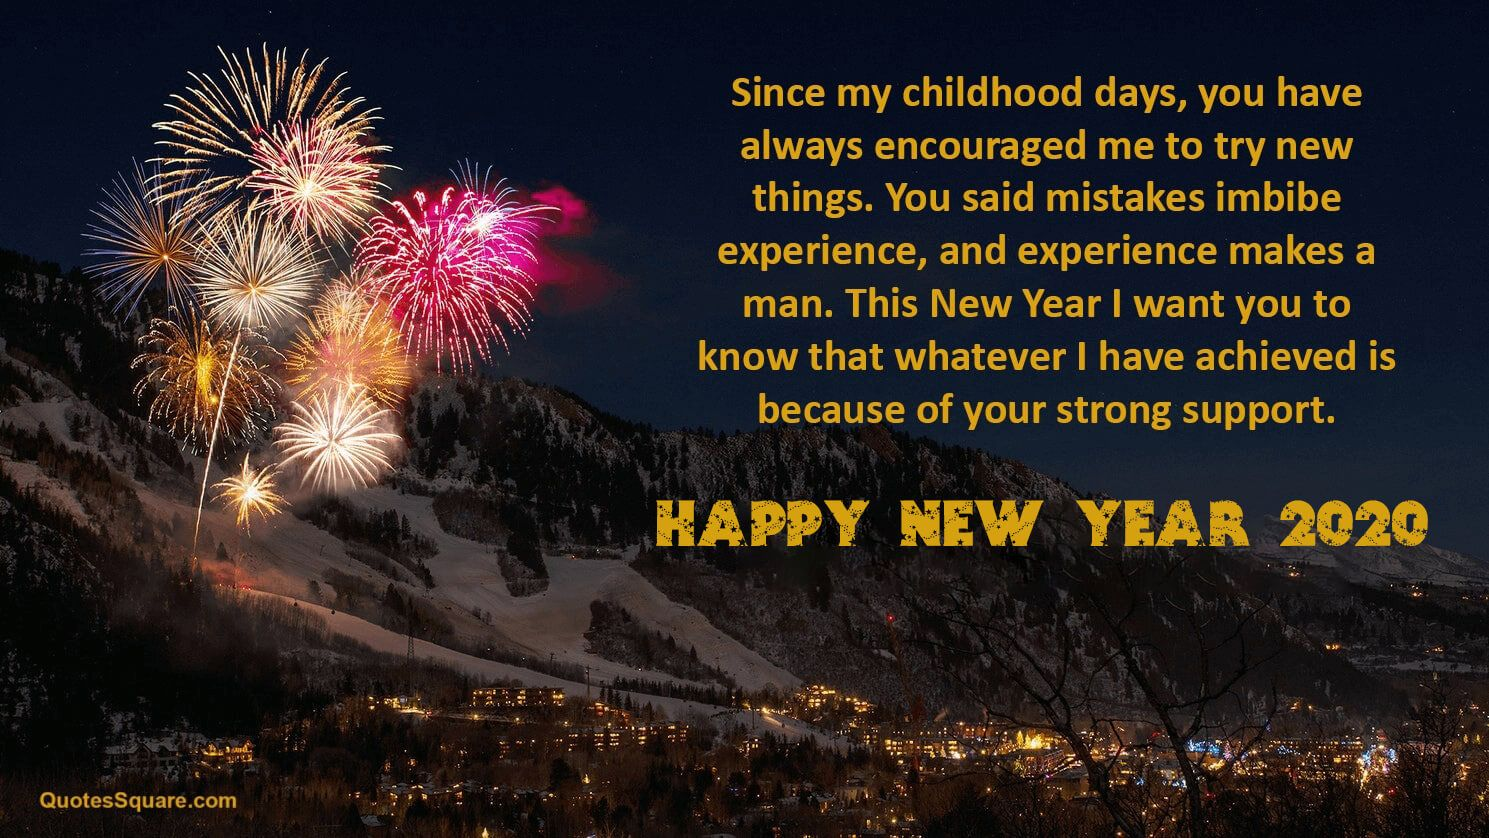 20 Happy New Year 2021 Wishes for Elders (Senior Citizens